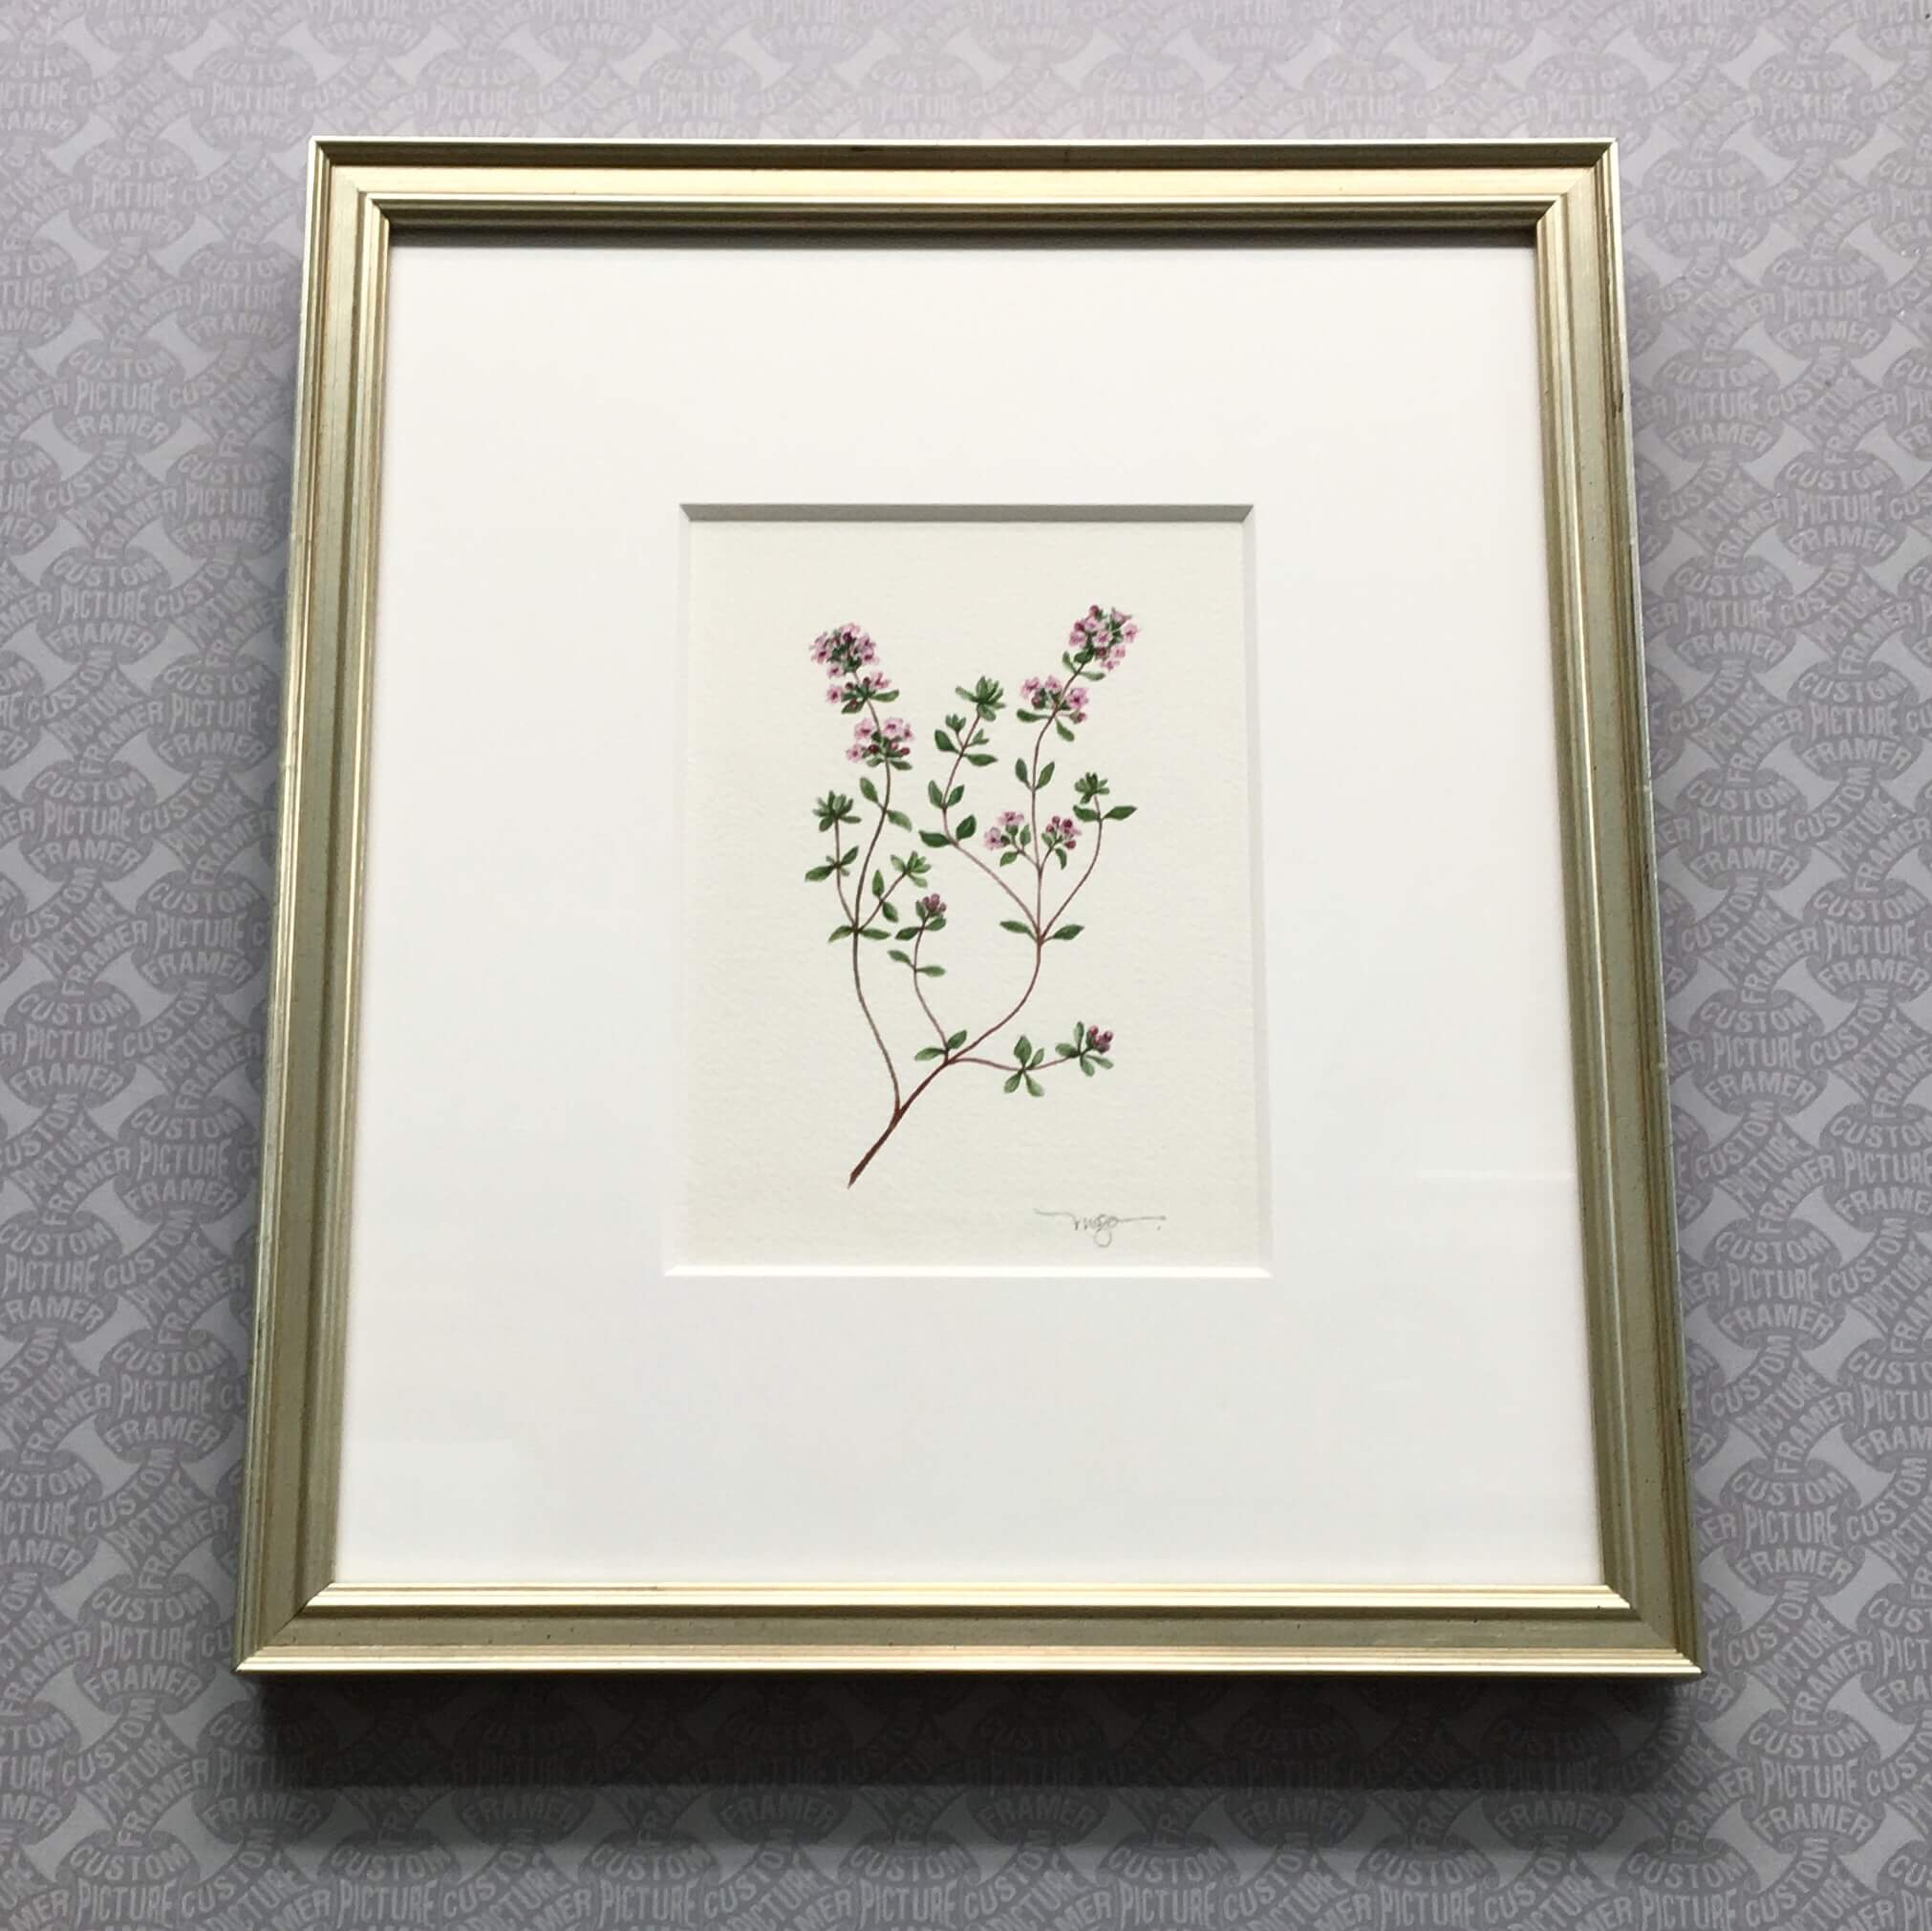 """It's Thyme"" original watercolor by Melissa G Olson - custom framed in antique silver with 8 ply mat. Are you an artist looking for quality framing at an affordable price? We'll help you prepare for shows and frame to client specifications...at a 10% discount! For more information, stop in, visit us on the web (link in bio), or call 215-572-0679."